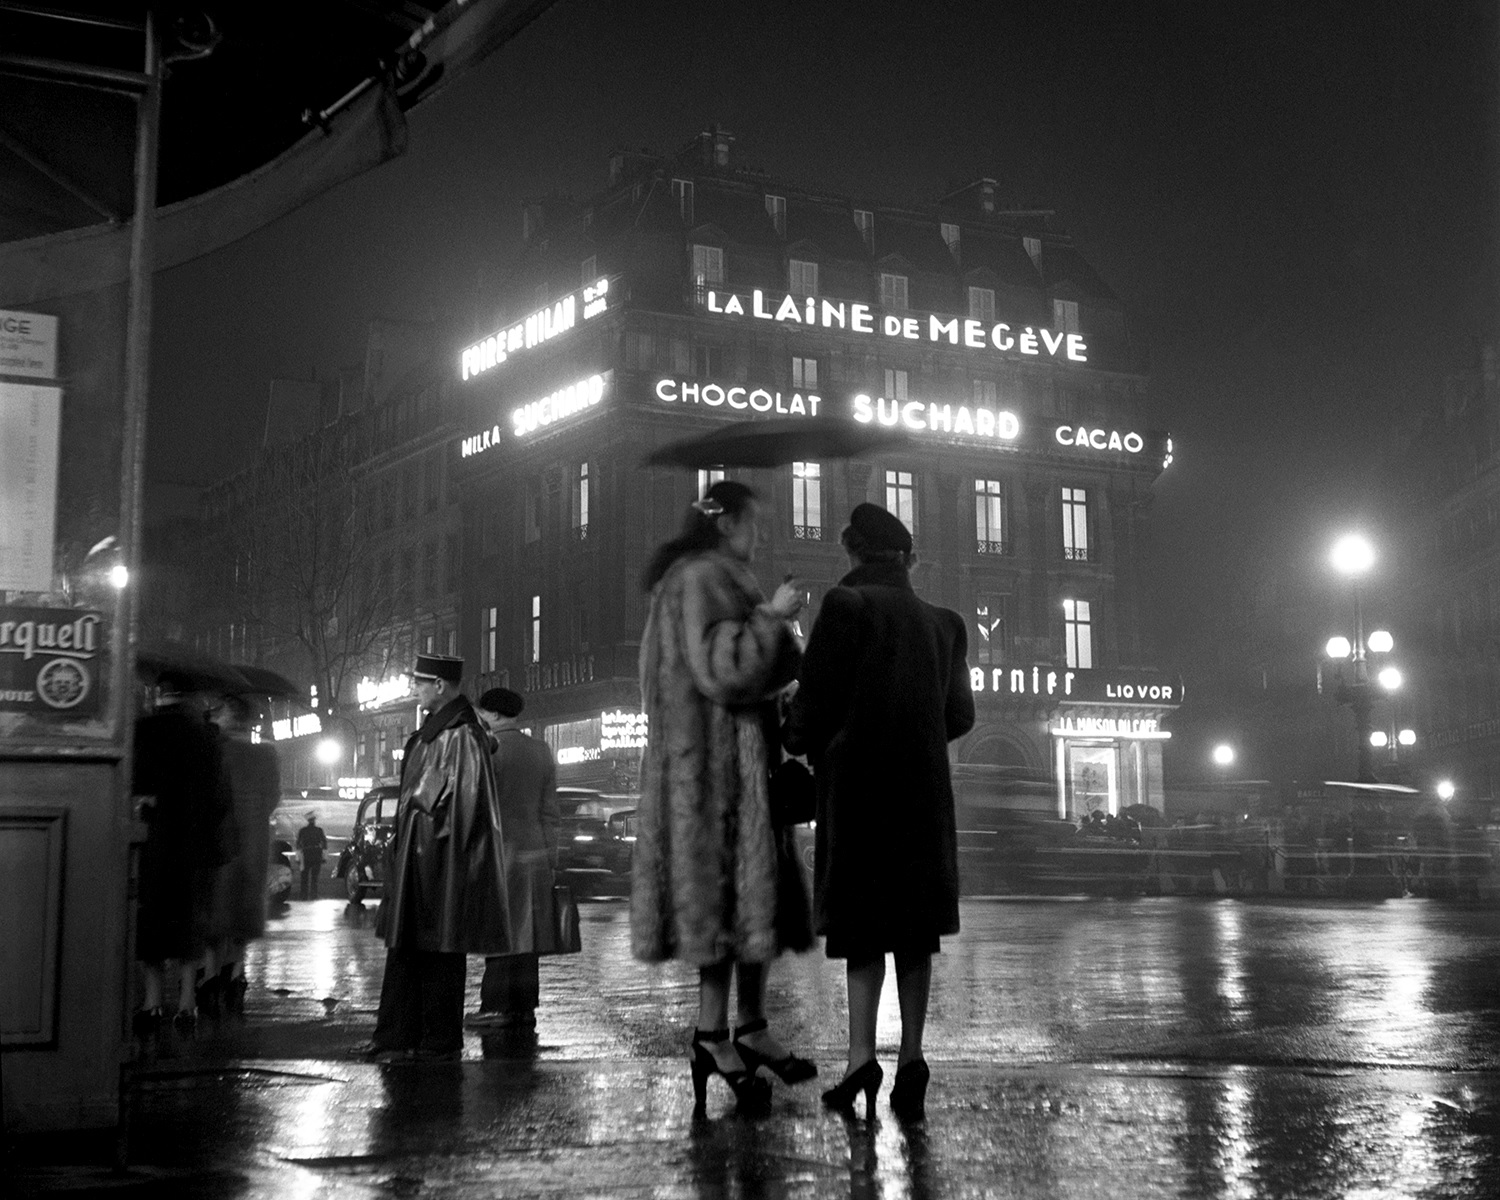 Paris street on a rainy night. From Walt Girdner's Paris collection.